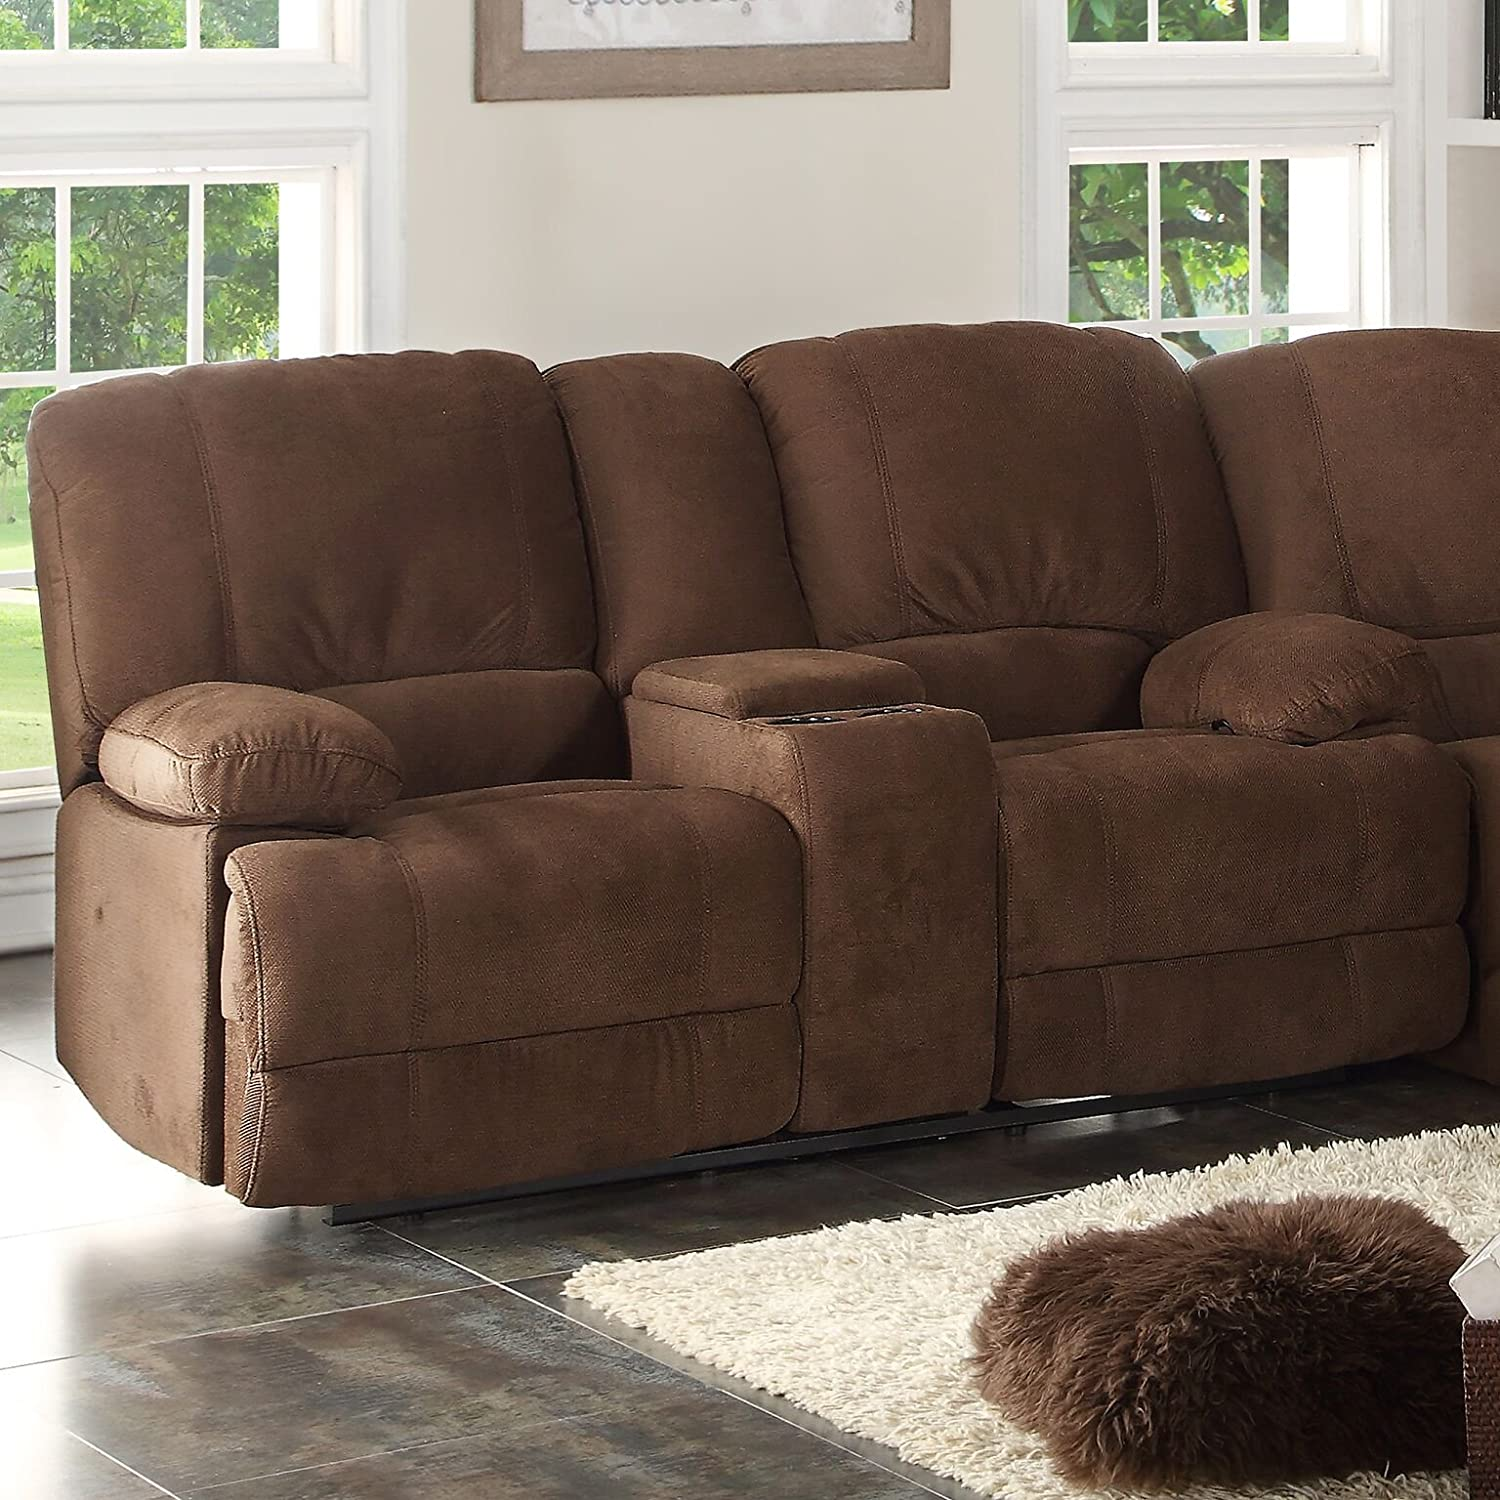 natltgr l set detail values dkgr living great s and loveseat sofa lily rooms rsc bedrooms